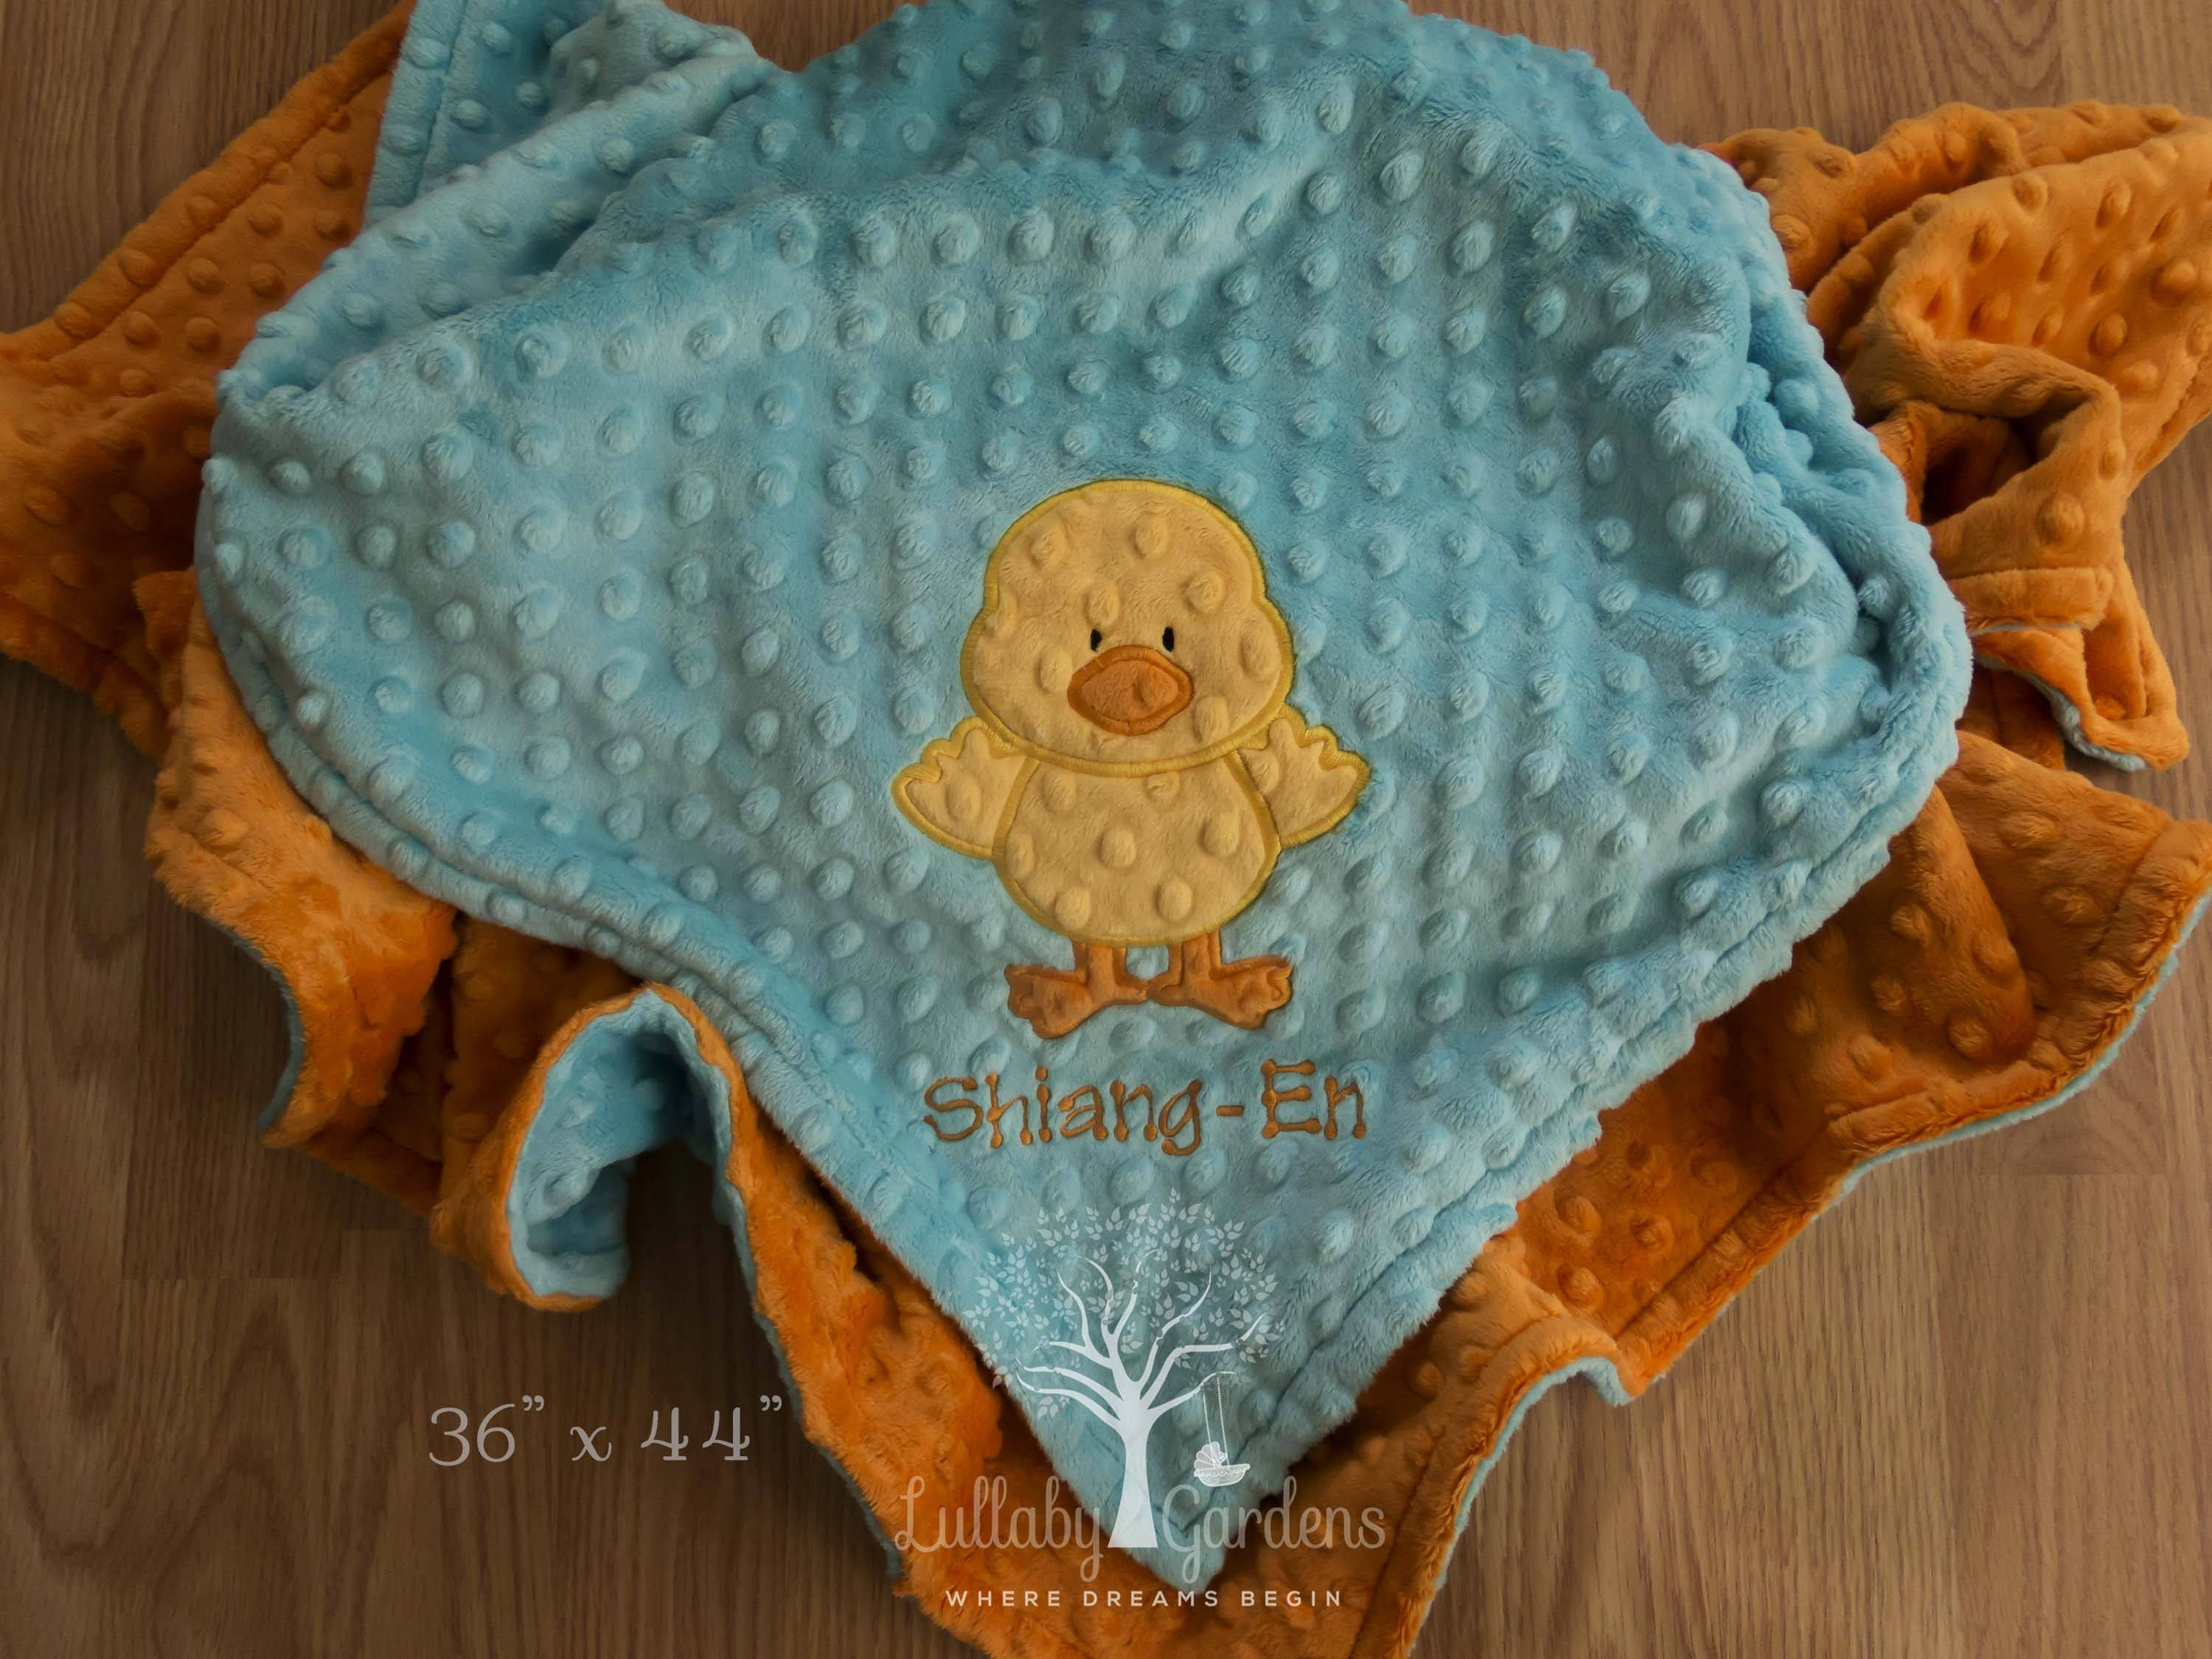 Personalized appliqued chick baby blanket 36 x 44 personalized personalized appliqued chick baby blanket x personalized minky baby blanket personalized baby gift custom appliqued baby blanket by lullabygardens on negle Gallery